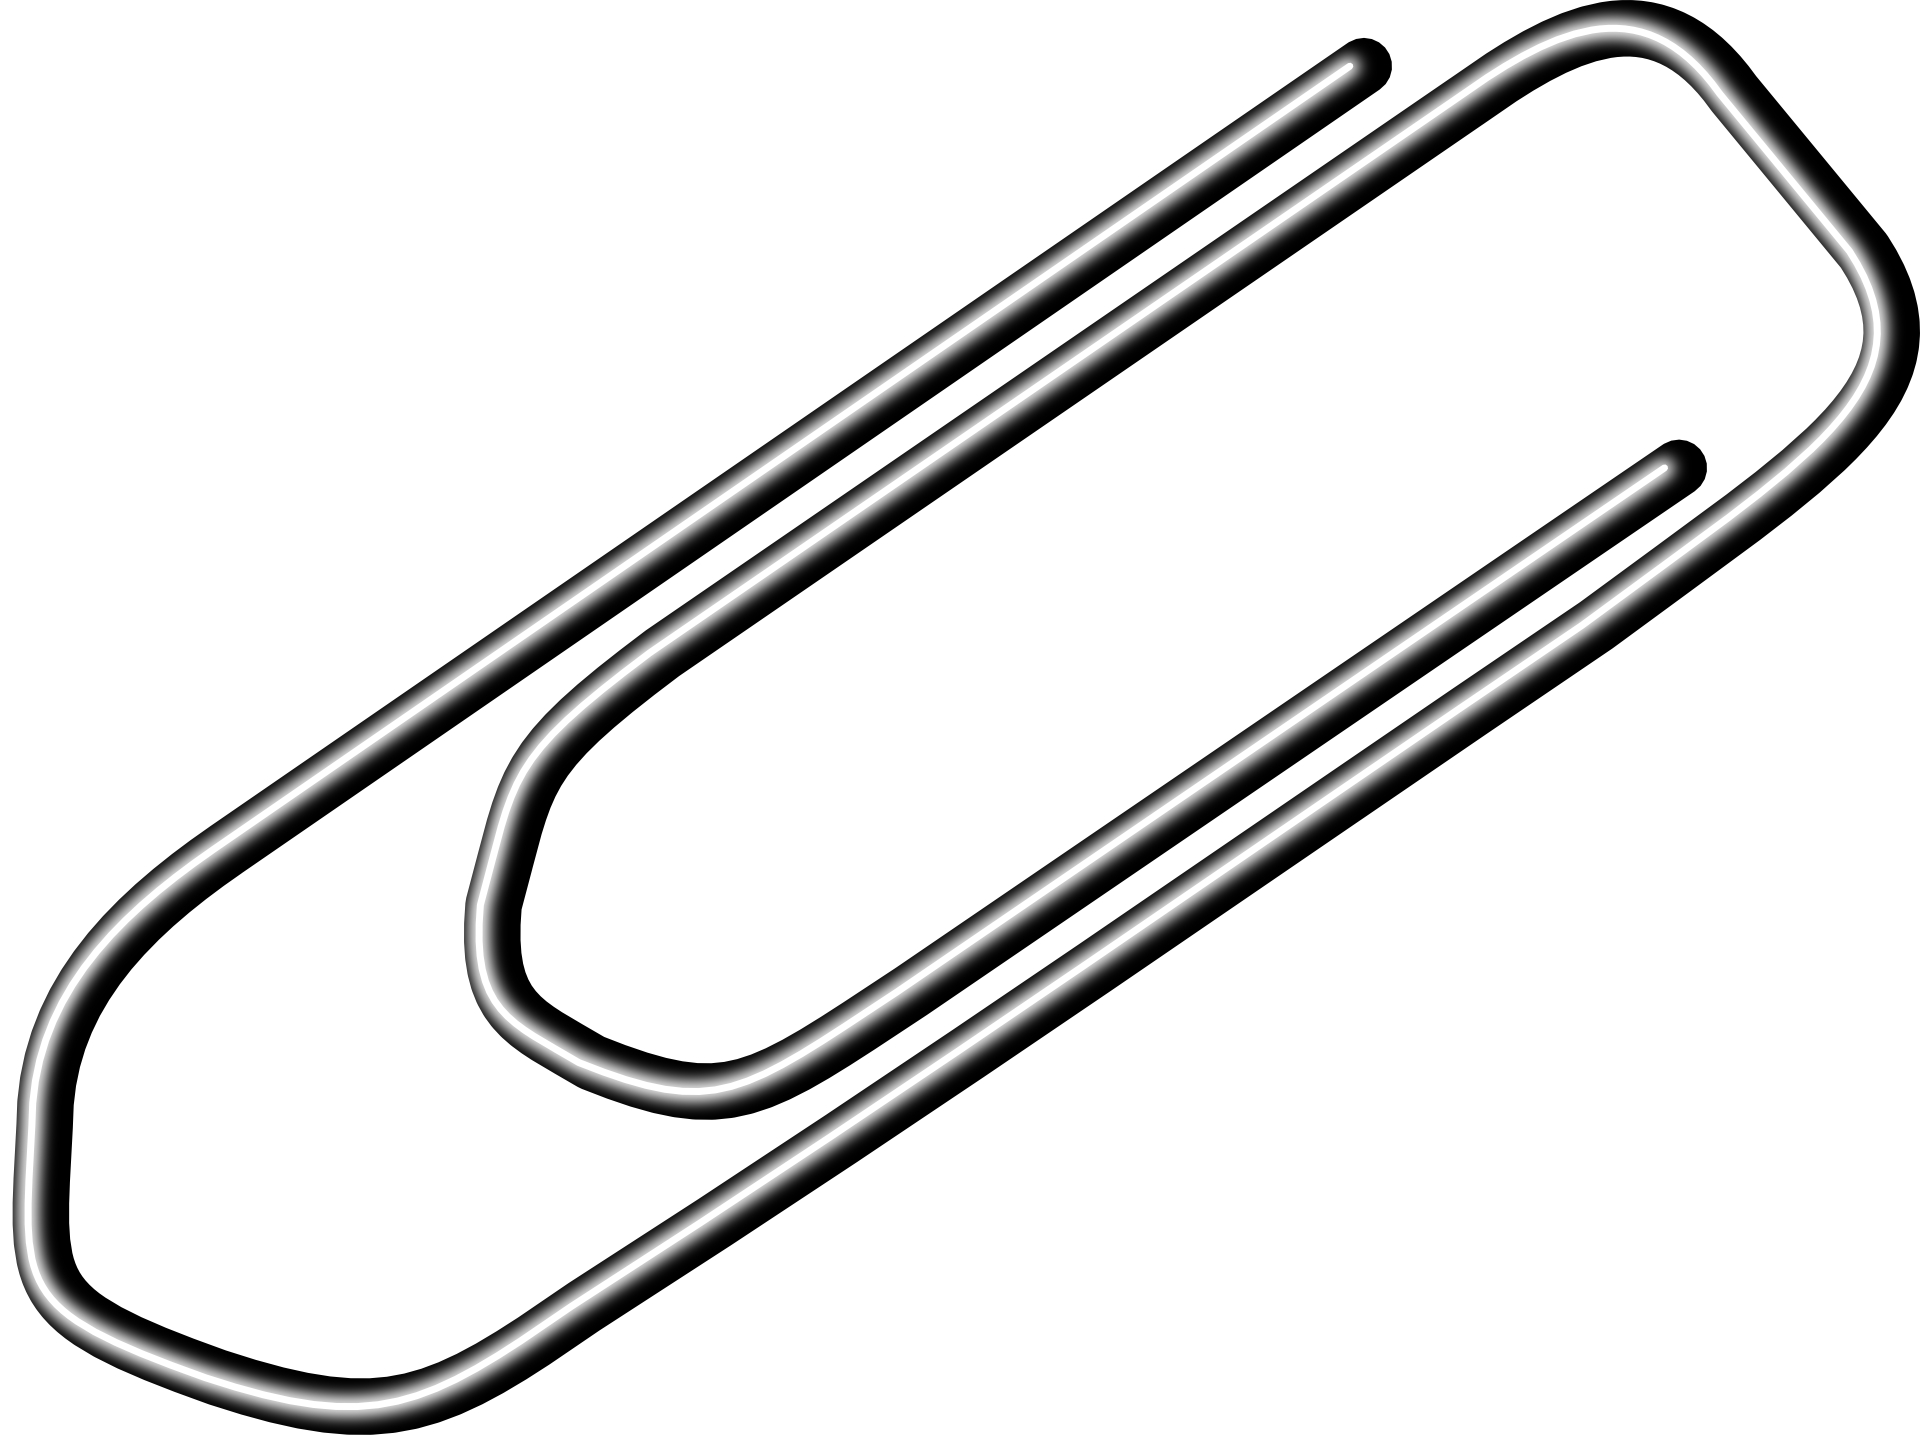 office tool,paperclip vector